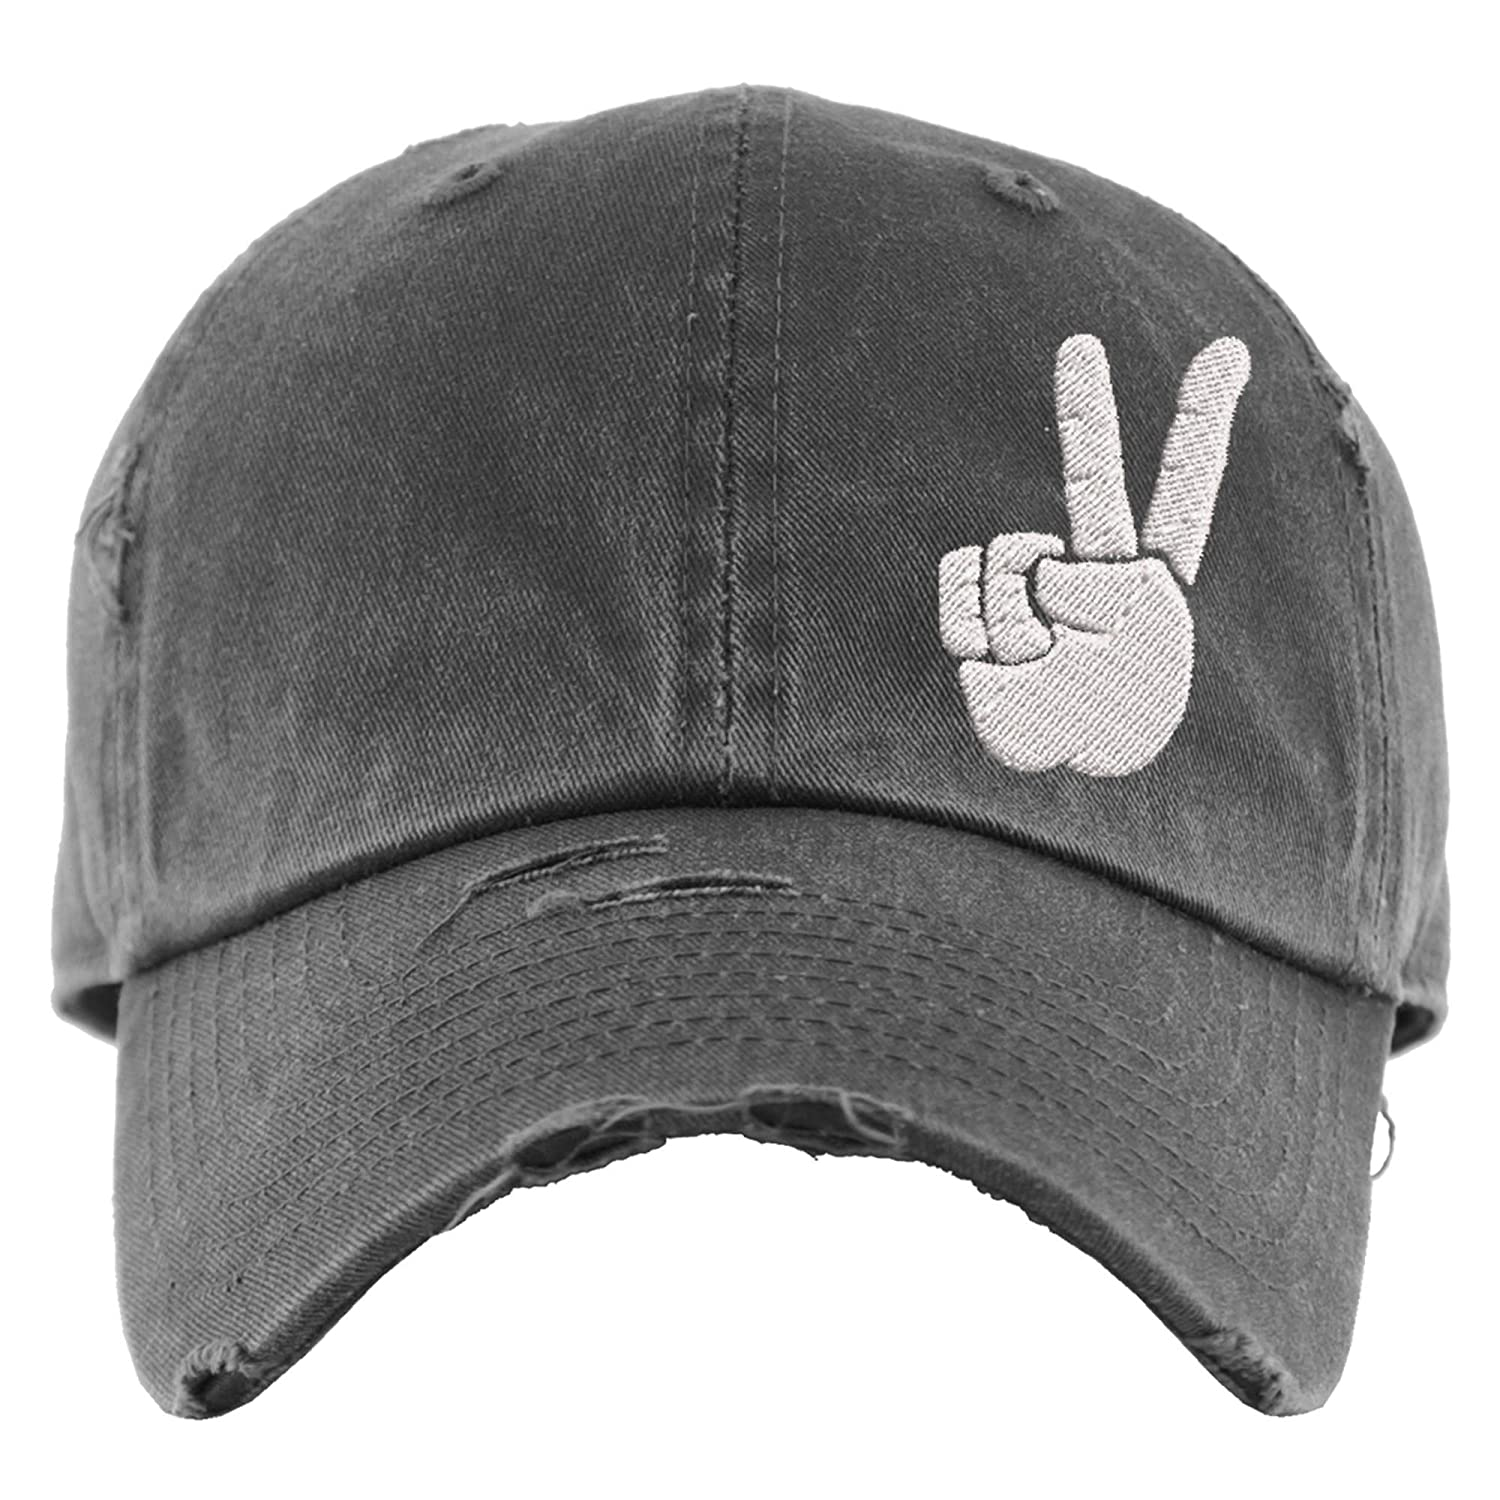 Don't miss the campaign Peace Hat Distressed Baseball Chicago Mall Sign Ponytail Cap OR